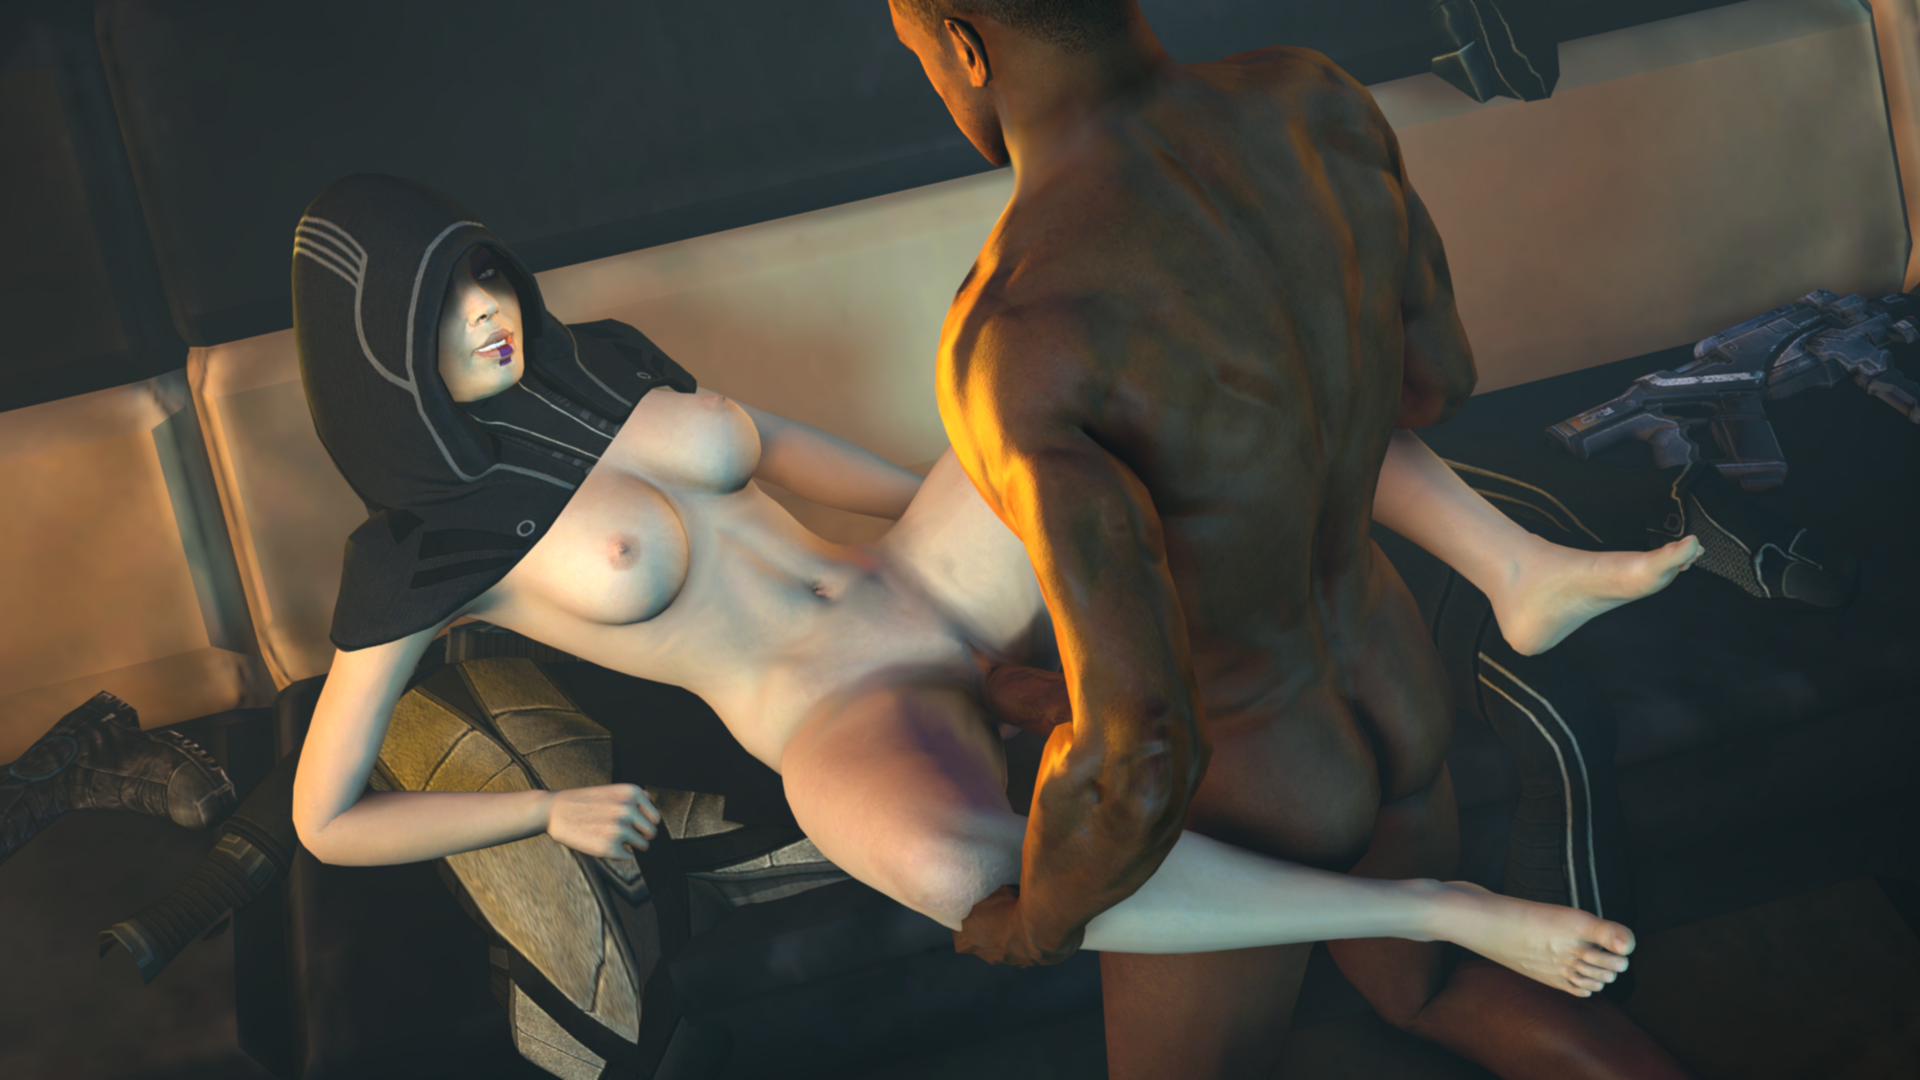 Mass effect 2 porno nackt naked picture